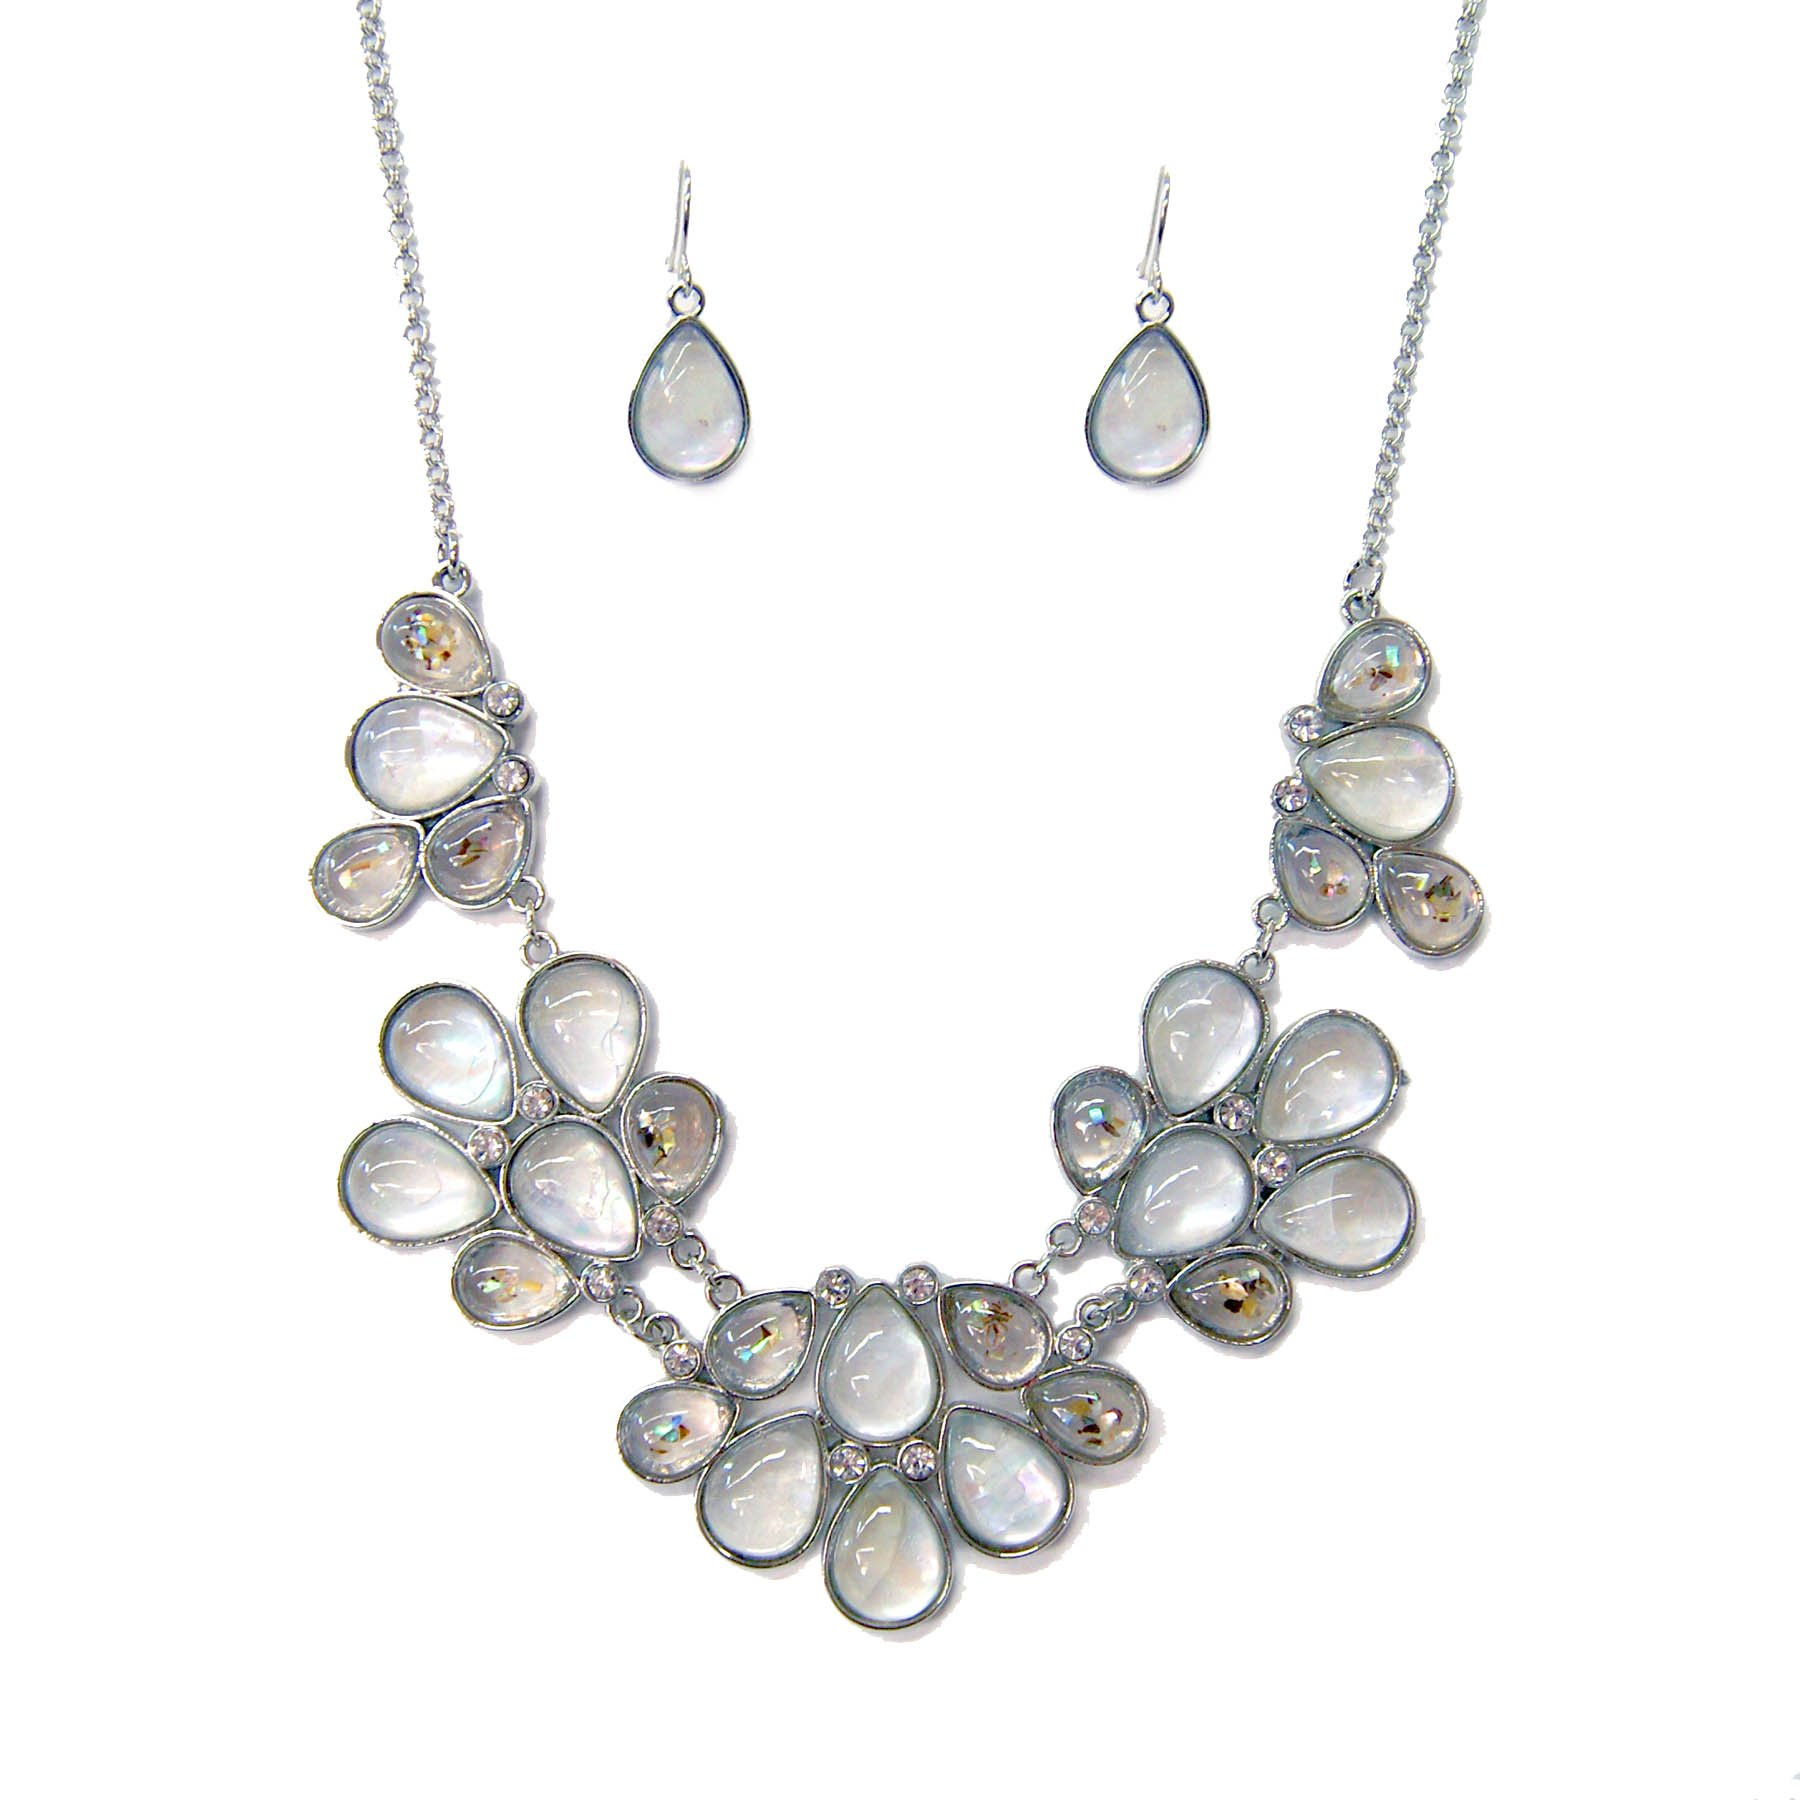 XS Accessories Lavender Gray Iridescent Glass Stone Teardrop Shape Necklace & Earring Set for Women or Girls